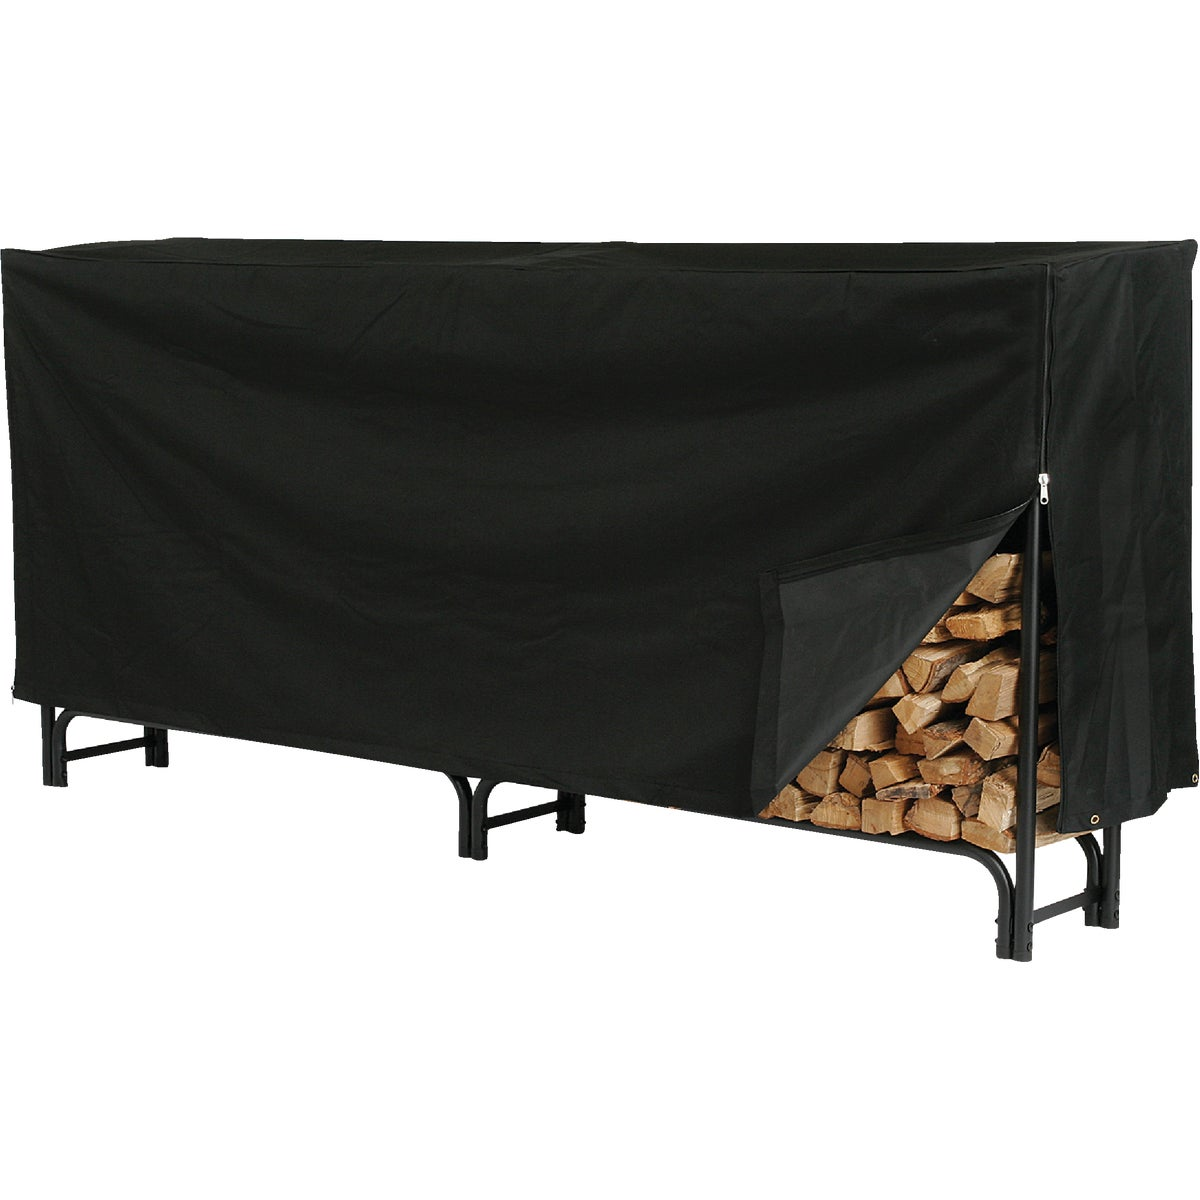 XL LOG RACK COVER - SLRC-XL10 by Hy C Company